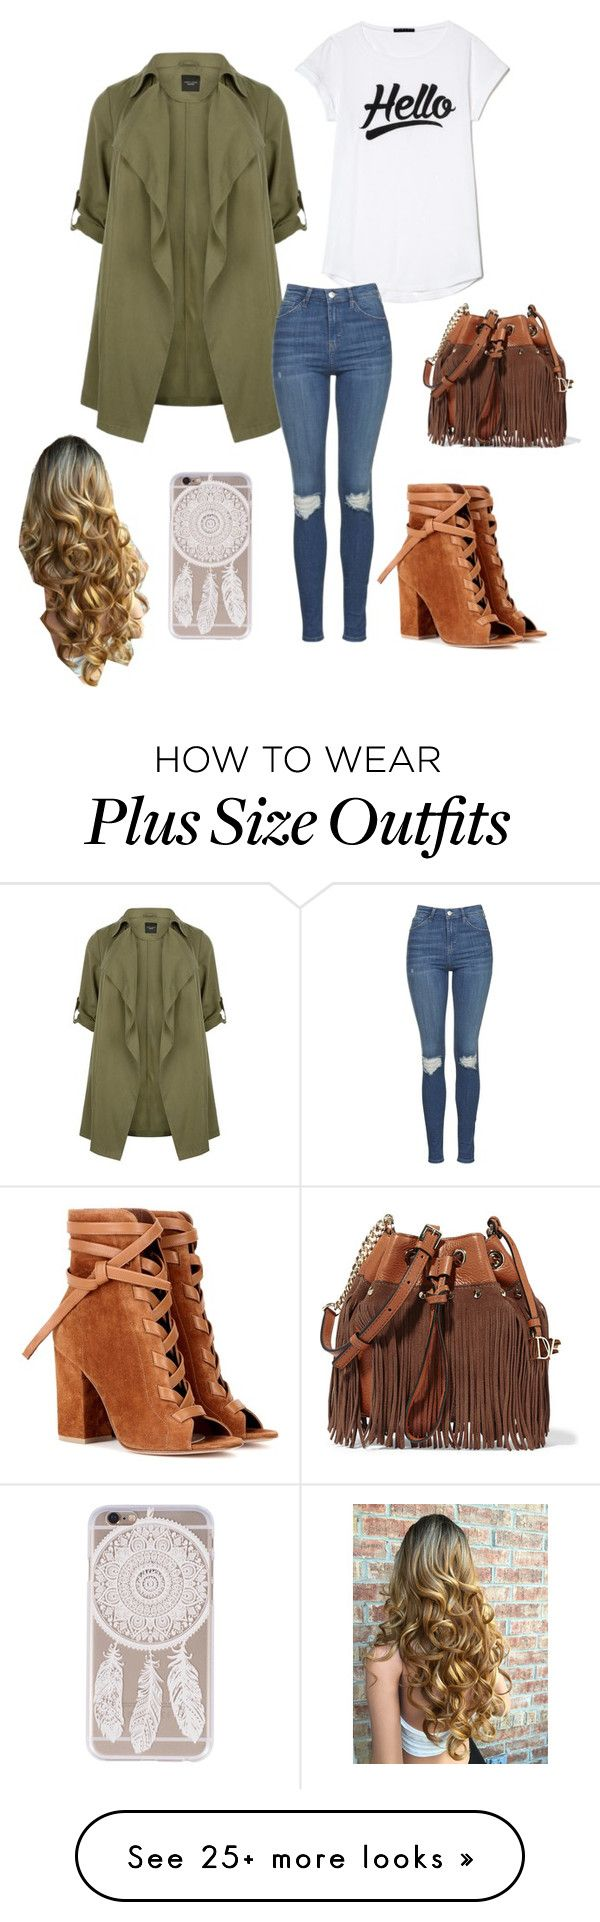 """""""Casual with style"""" by allyse-sympson on Polyvore featuring Topshop, Gianvito Rossi and Diane Von Furstenberg"""